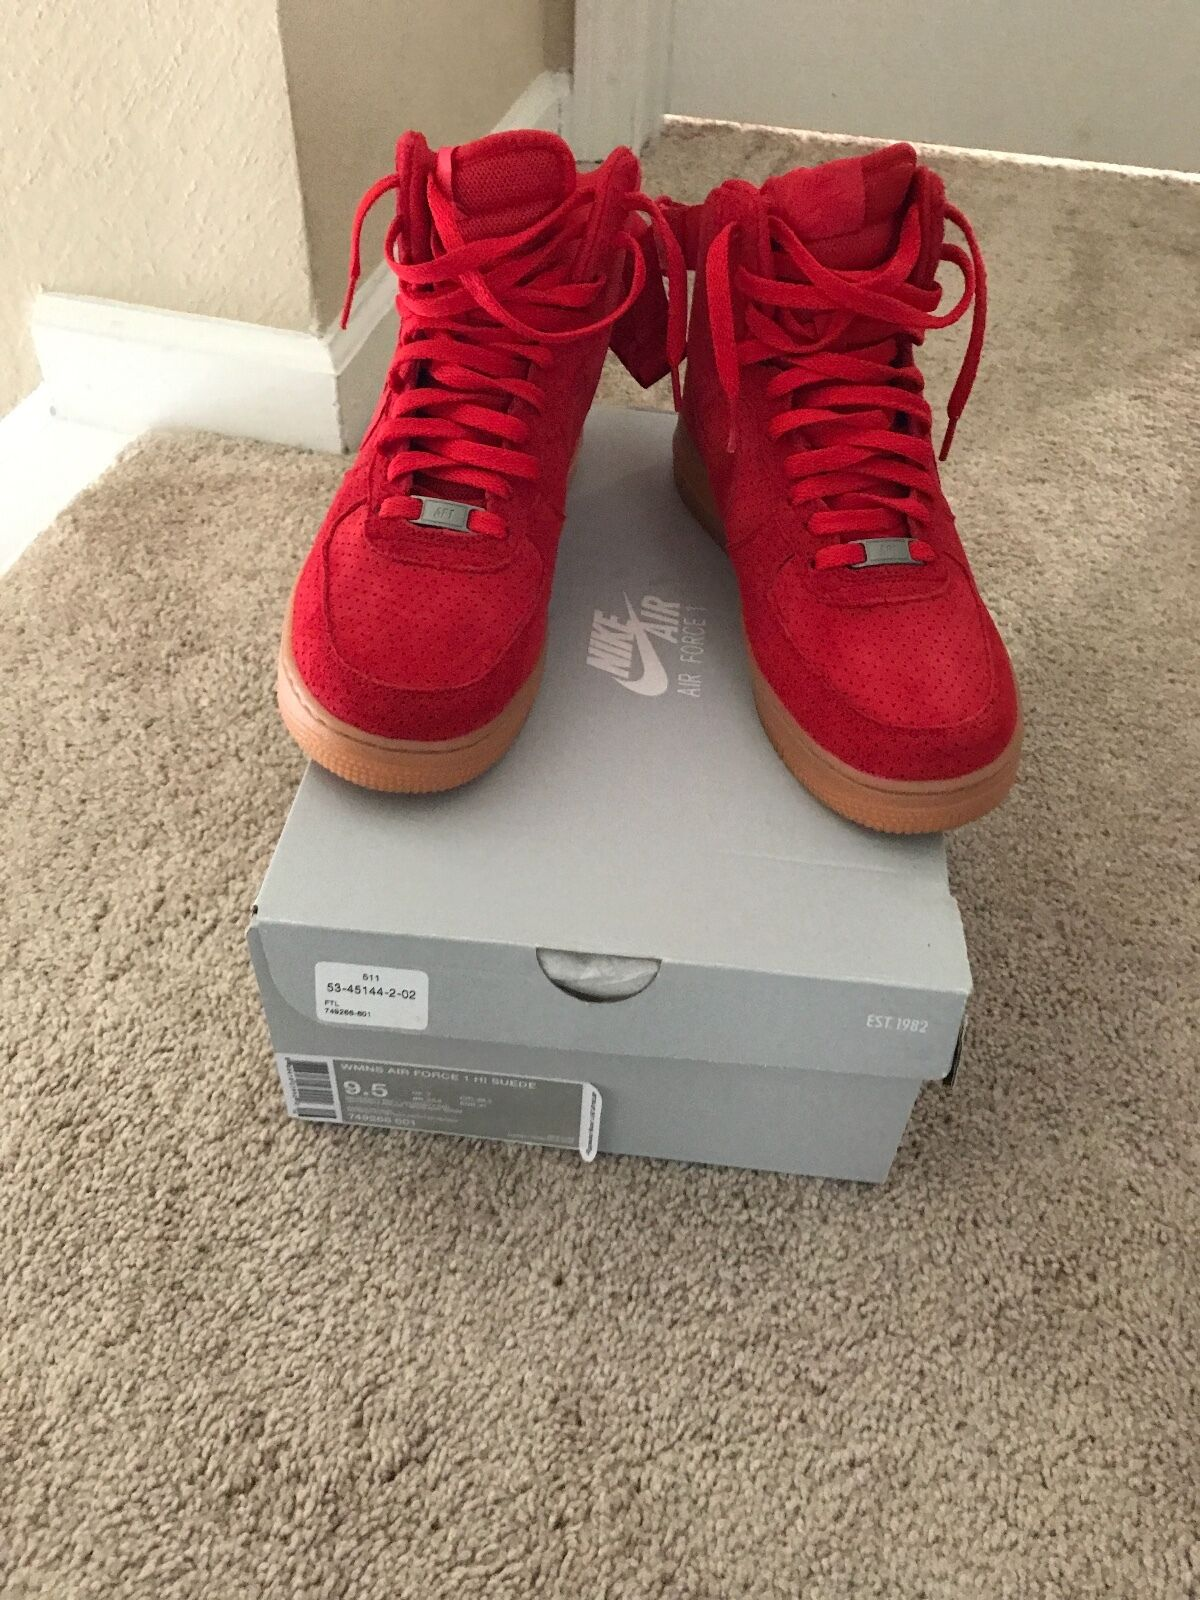 Red Air Force 1's Ladies Suede. Worn once, still have box and reciept.